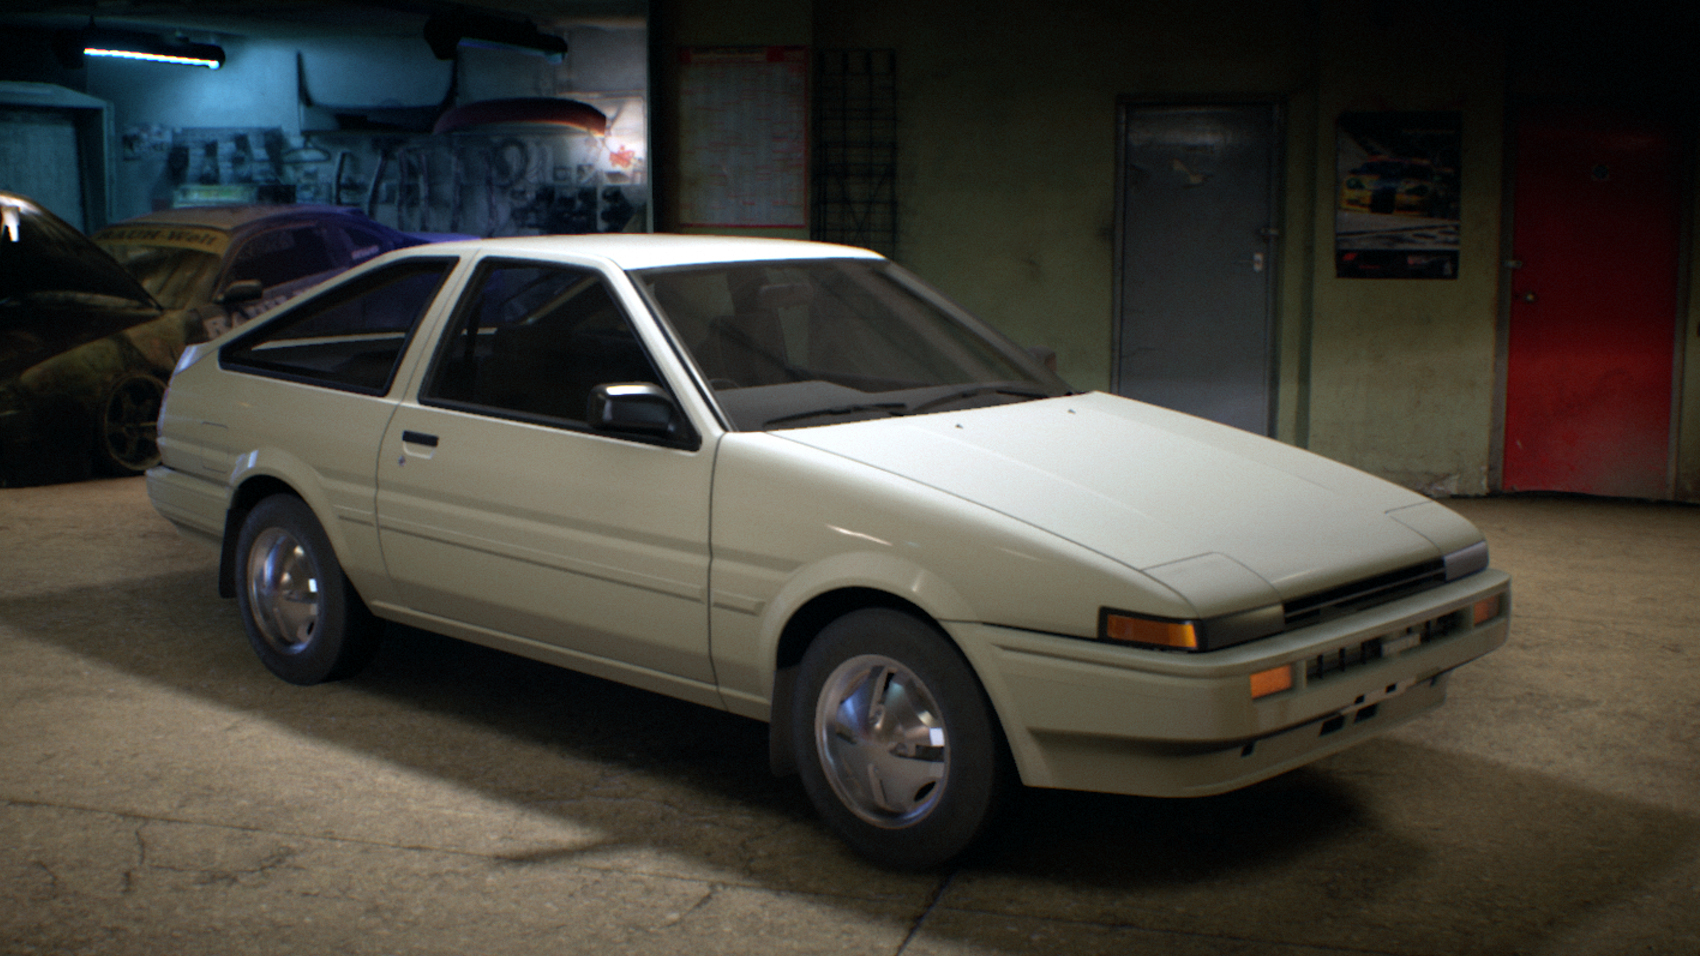 toyota sprinter gt apex ae86 need for speed wiki fandom powered by wikia. Black Bedroom Furniture Sets. Home Design Ideas